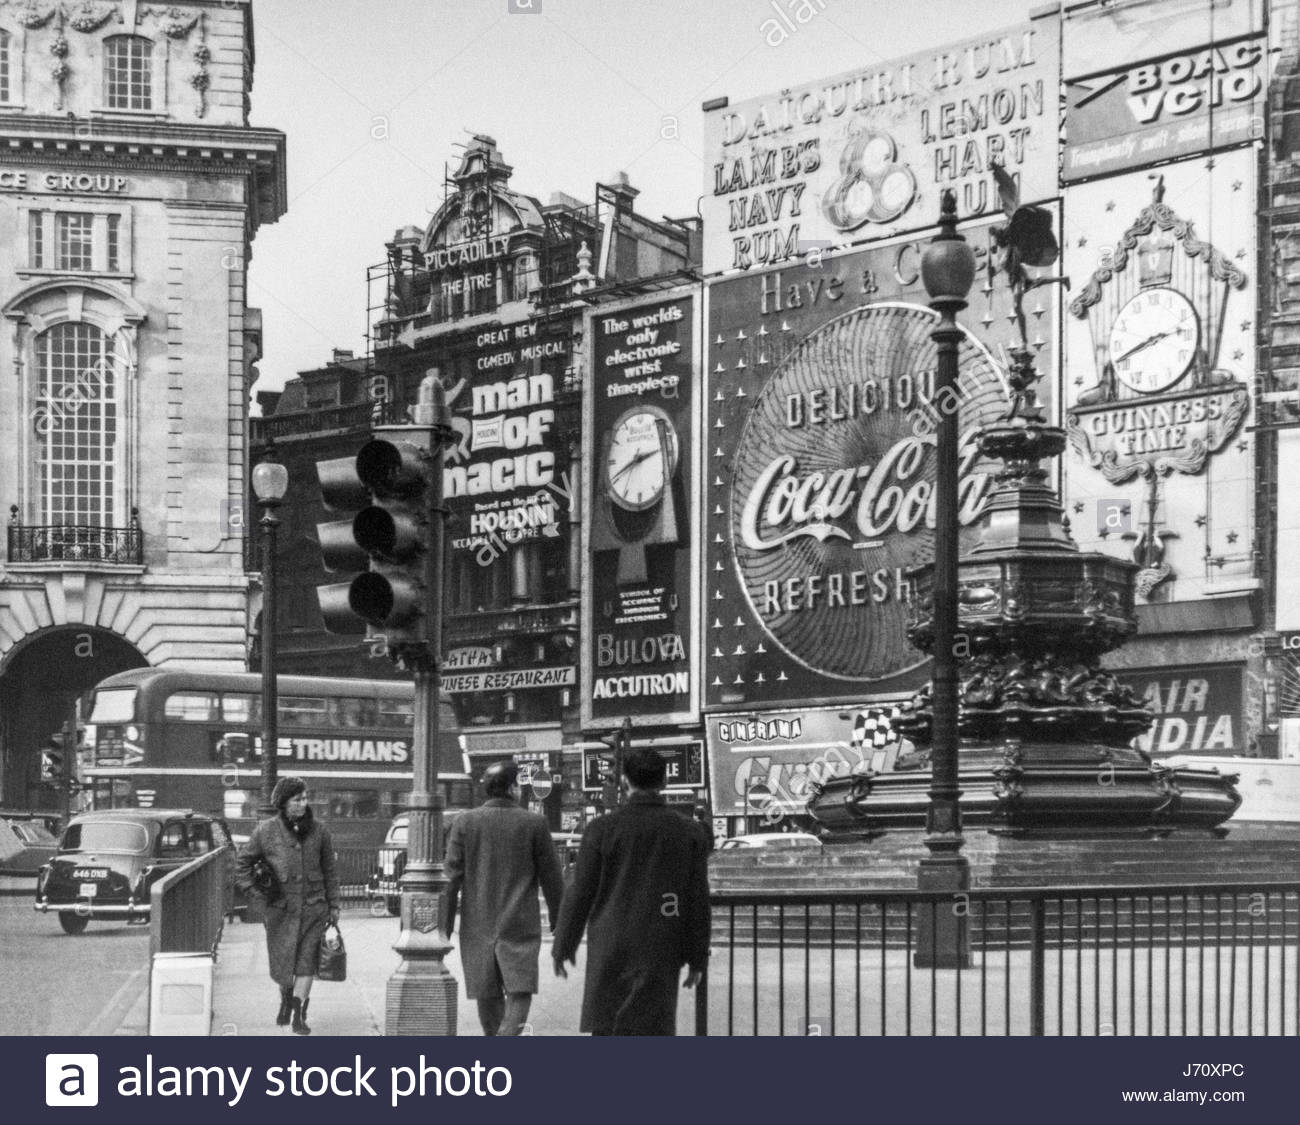 Piccadilly Circus, London, UK,  in winter, with neon adverts and Eros statue, London Routemaster bus and black taxi - Stock Image